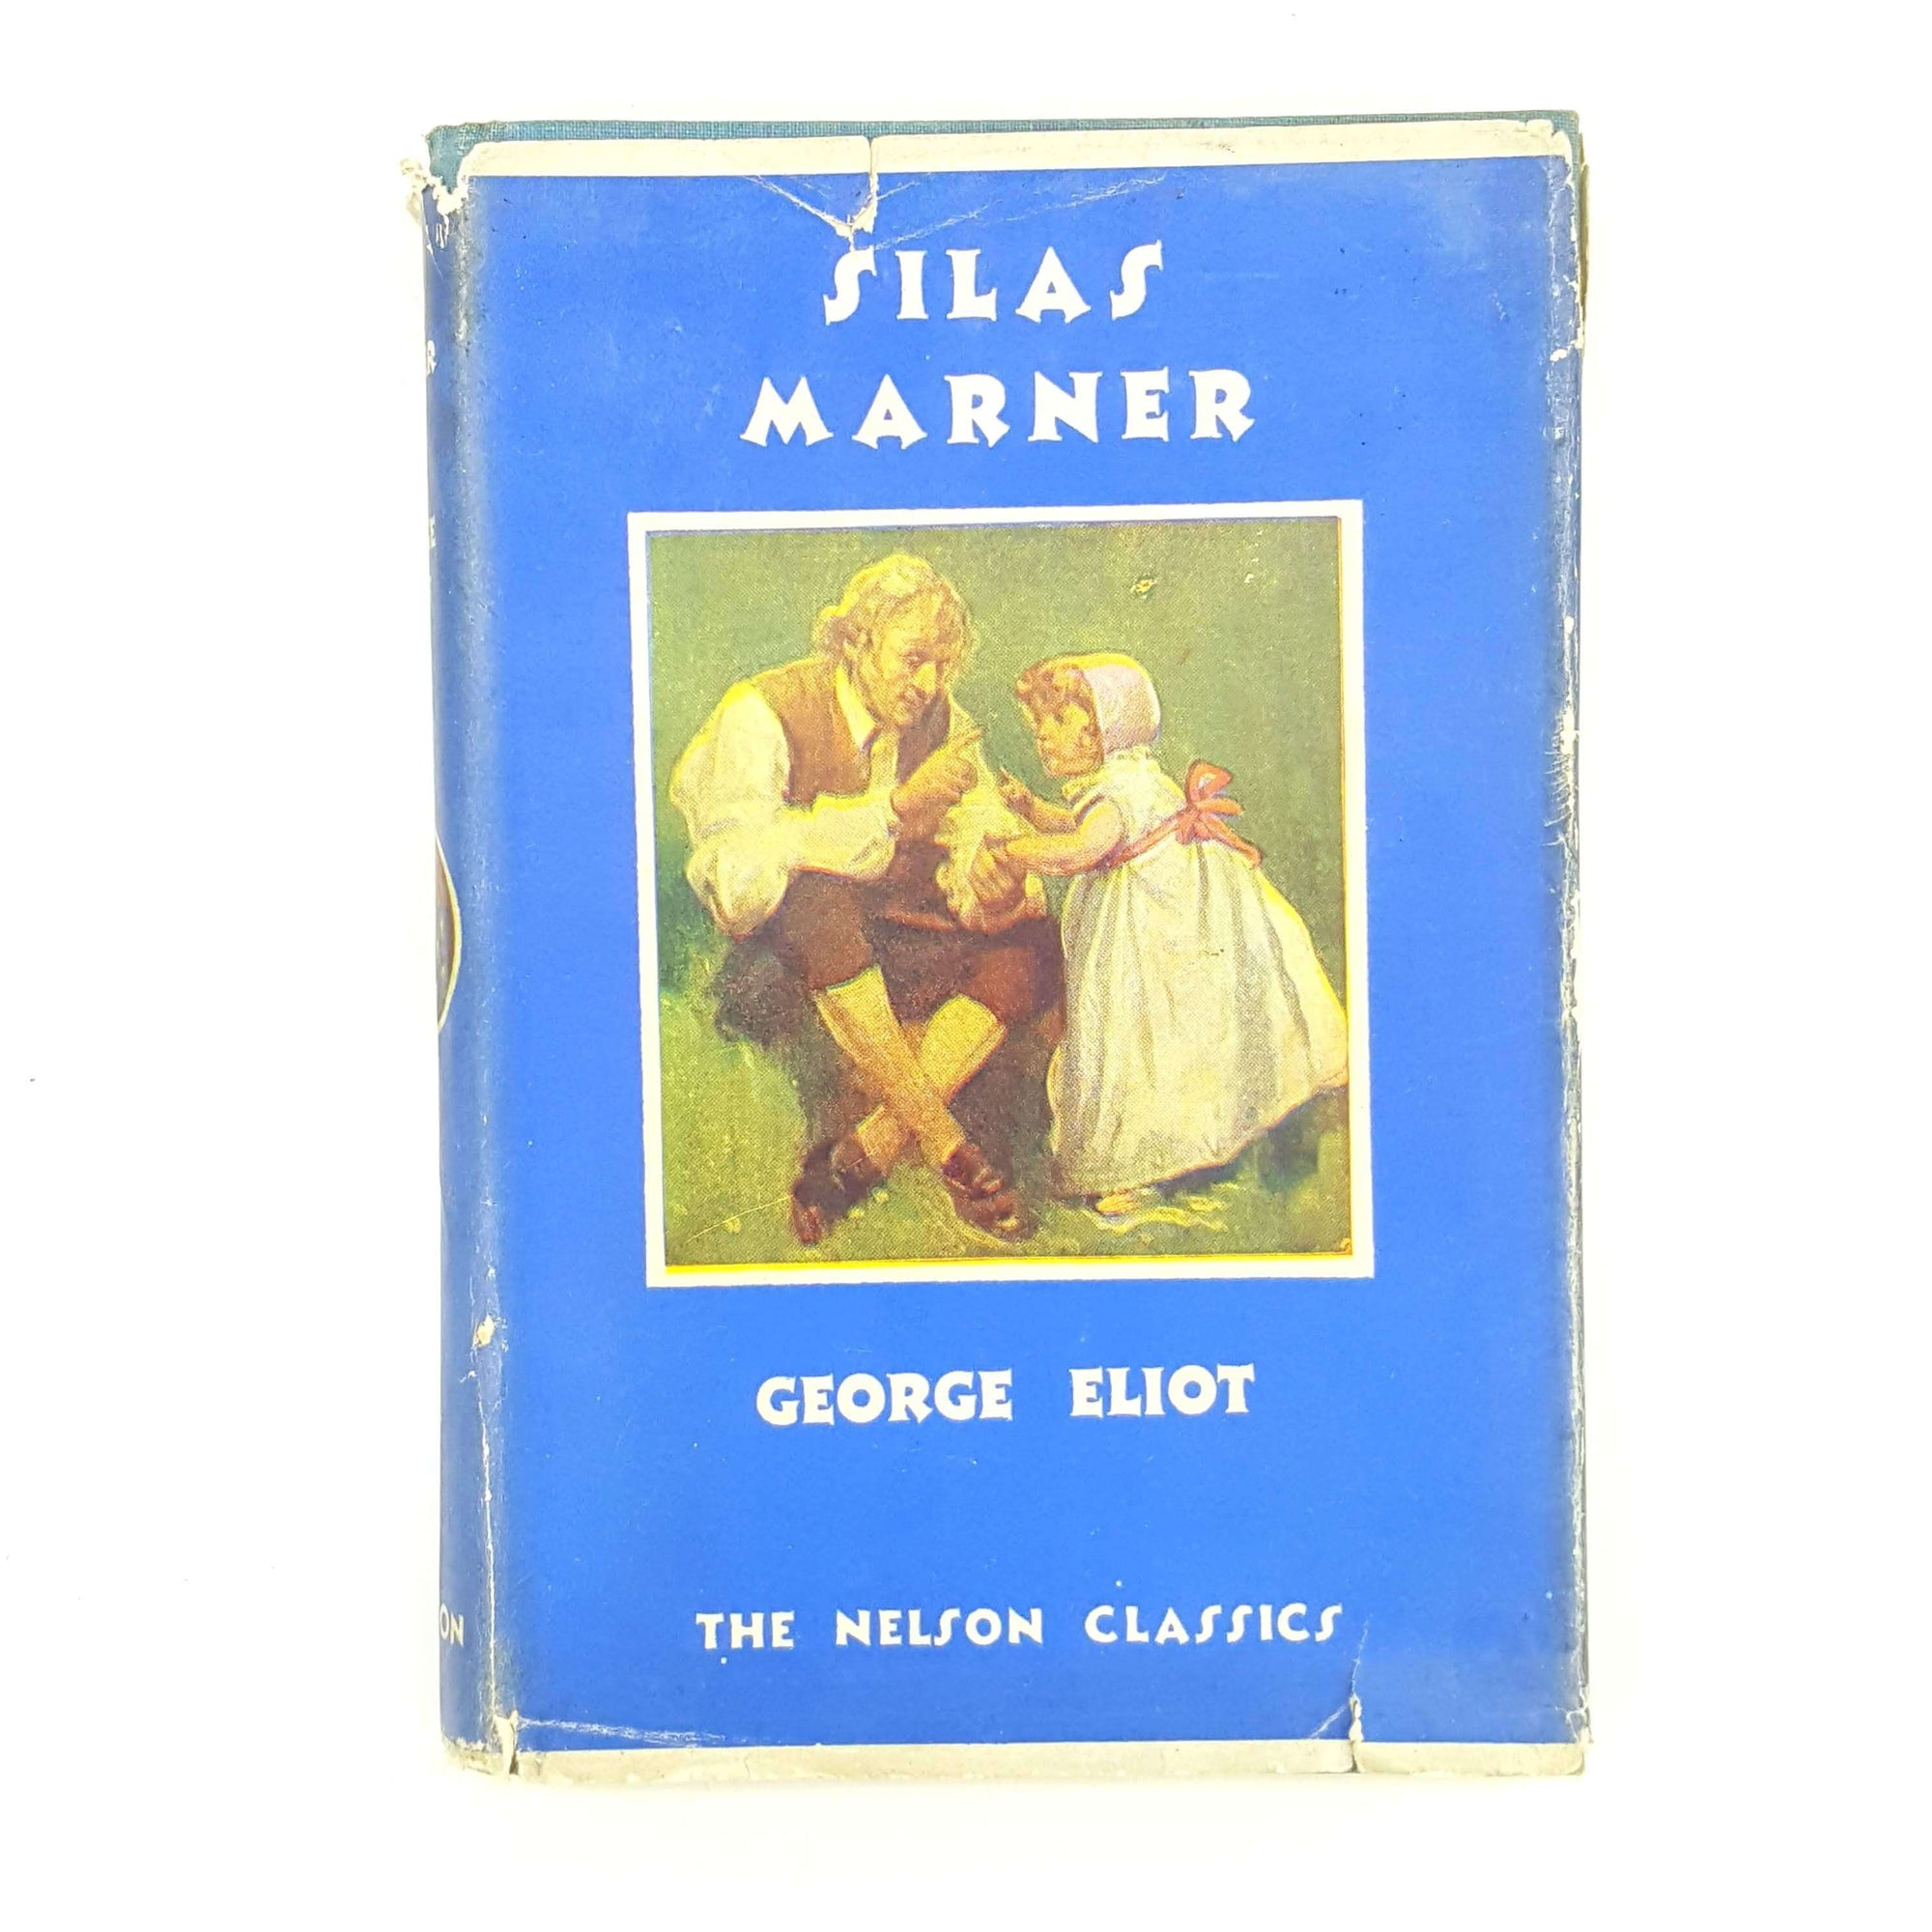 George Eliot's Silas Marner - Nelson Classics Country House Library